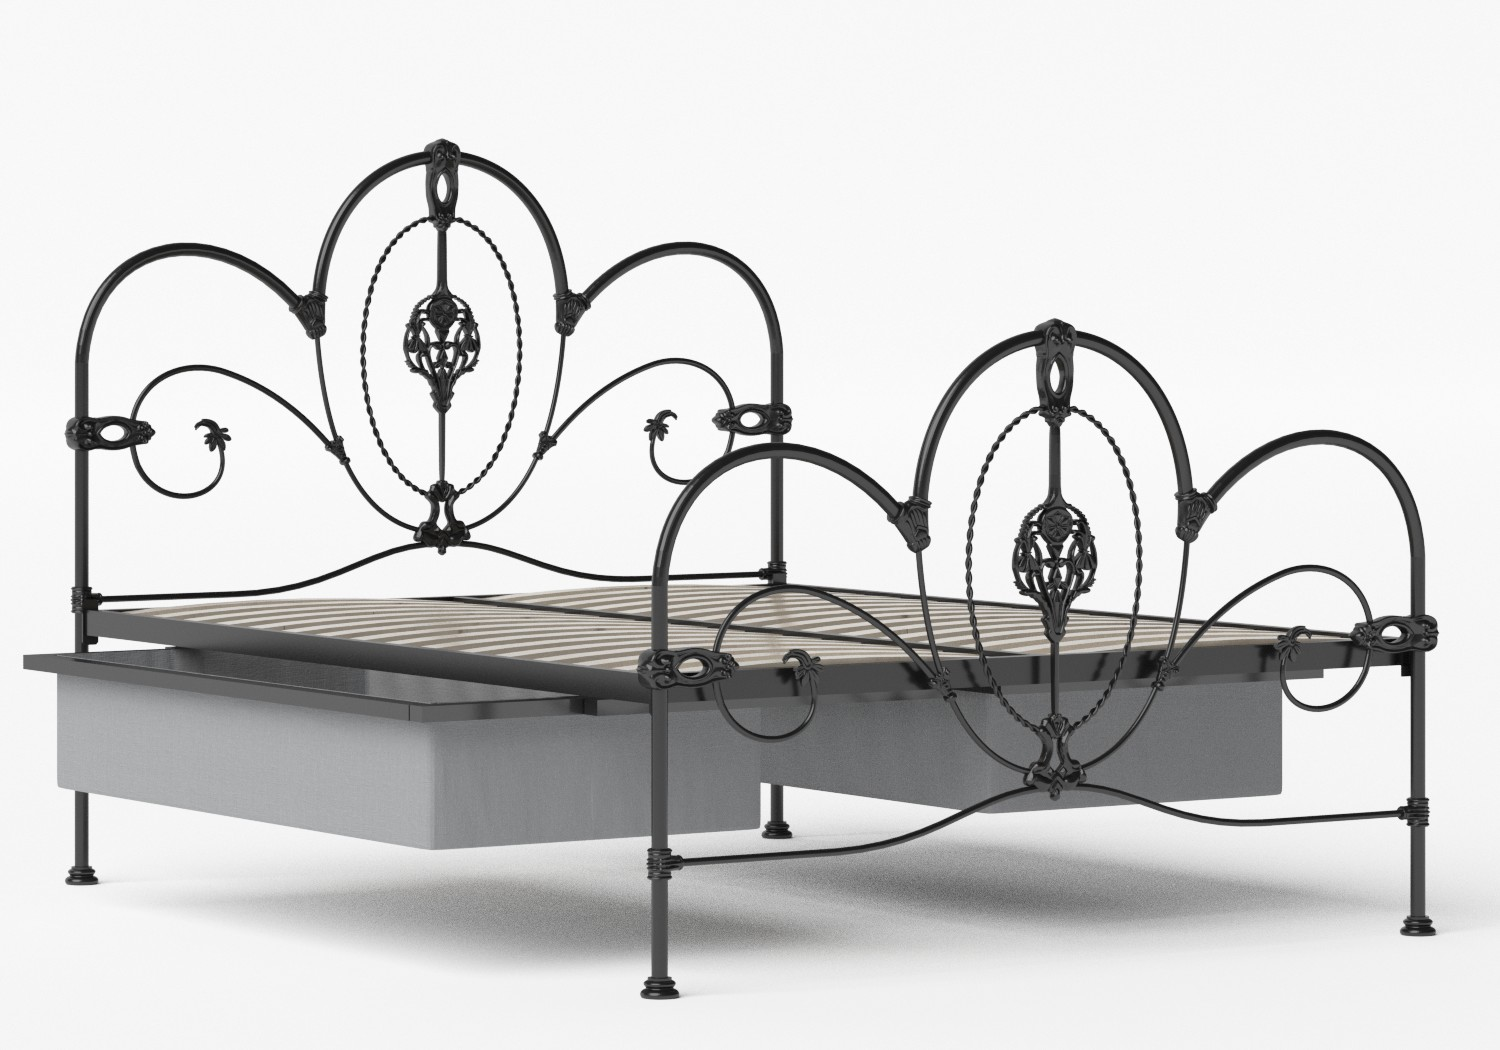 Ballina Iron/Metal Bed in Satin Black shown with underbed storage